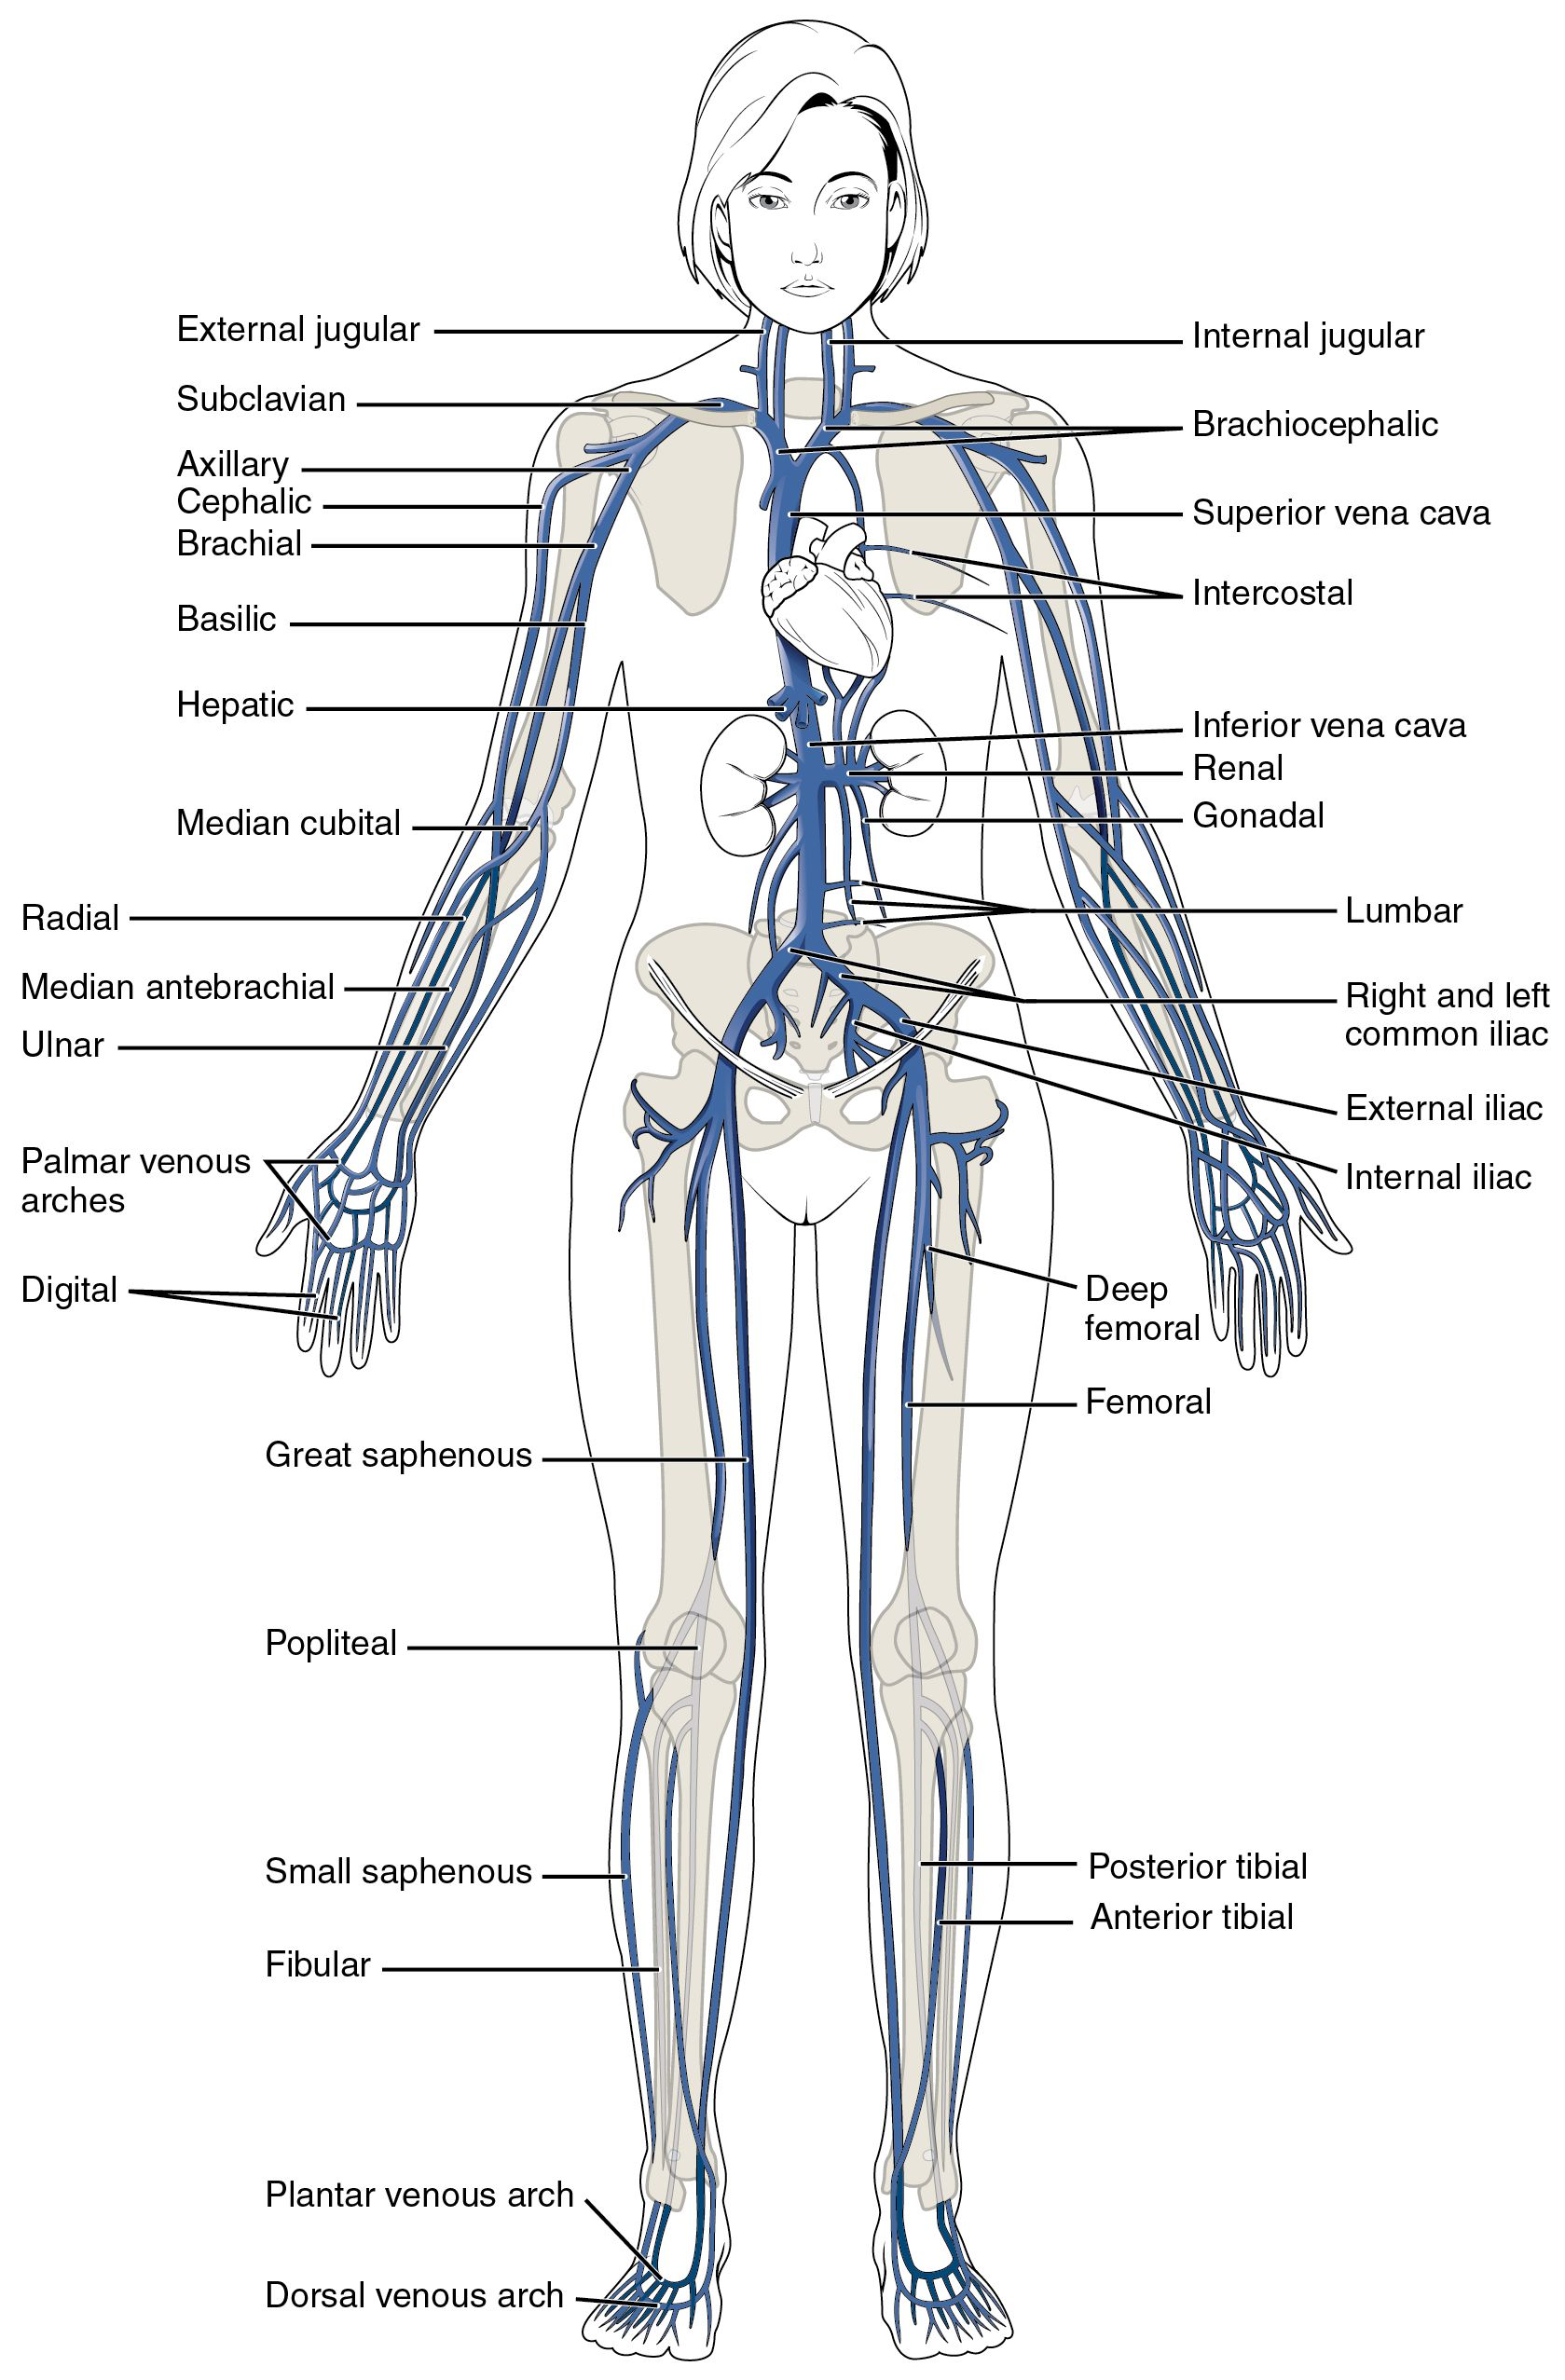 human arterial and venous diagrammed of the veins Anatomy of blood vessels of arteries and veins the human arterial and venous systems are diagrammed on the next two pages.